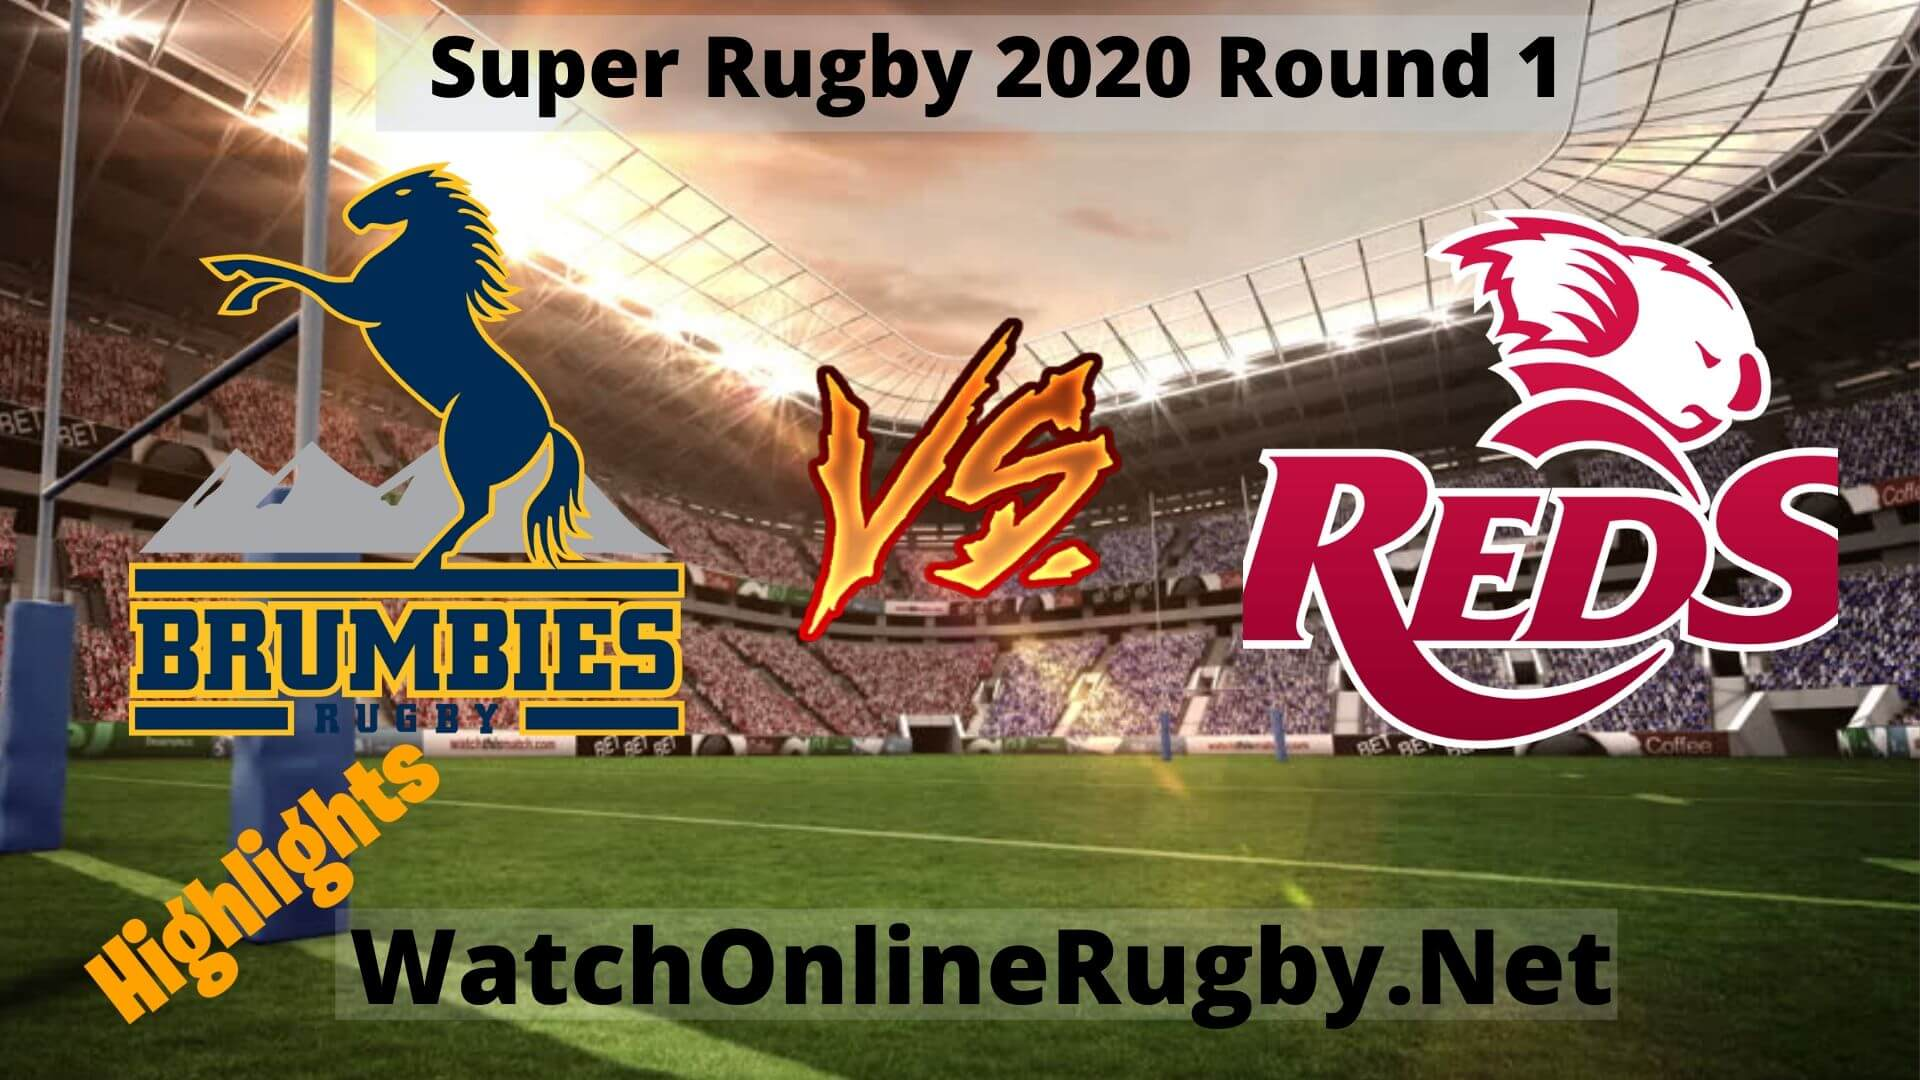 Brumbies Vs Reds Highlights Super Rugby 2020 Round 1